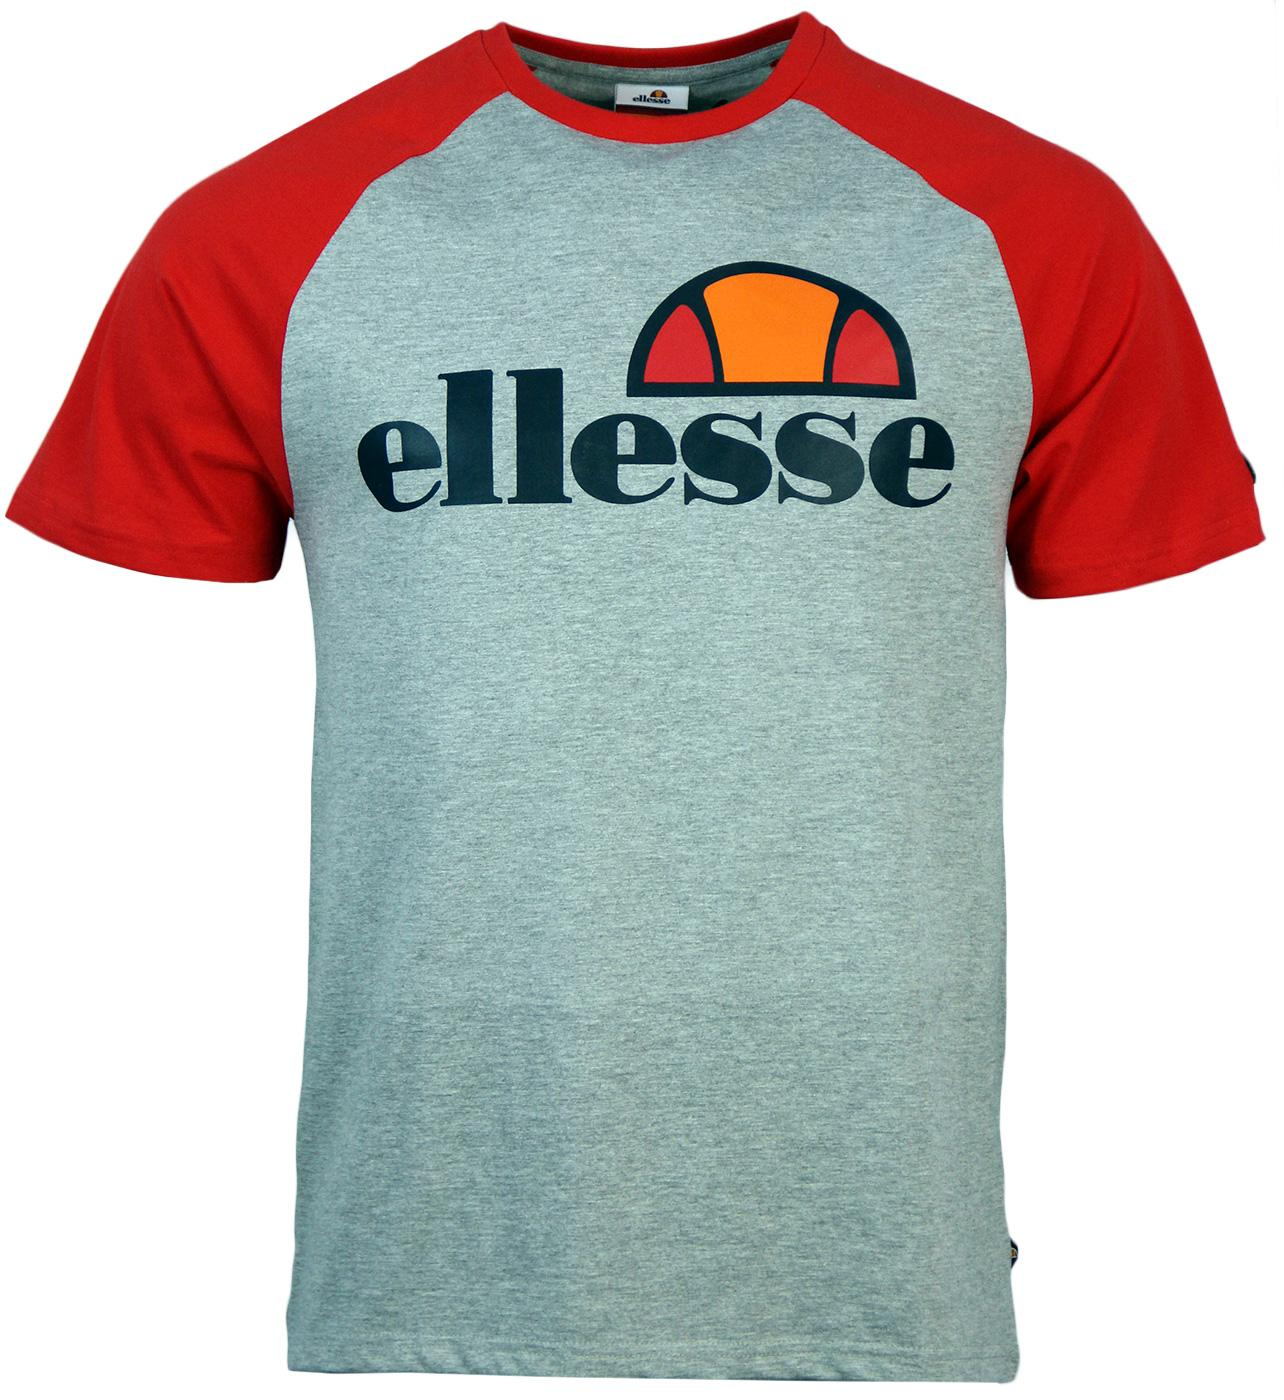 Scanno ELLESSE Retro 1980s Raglan Sleeves T-Shirt